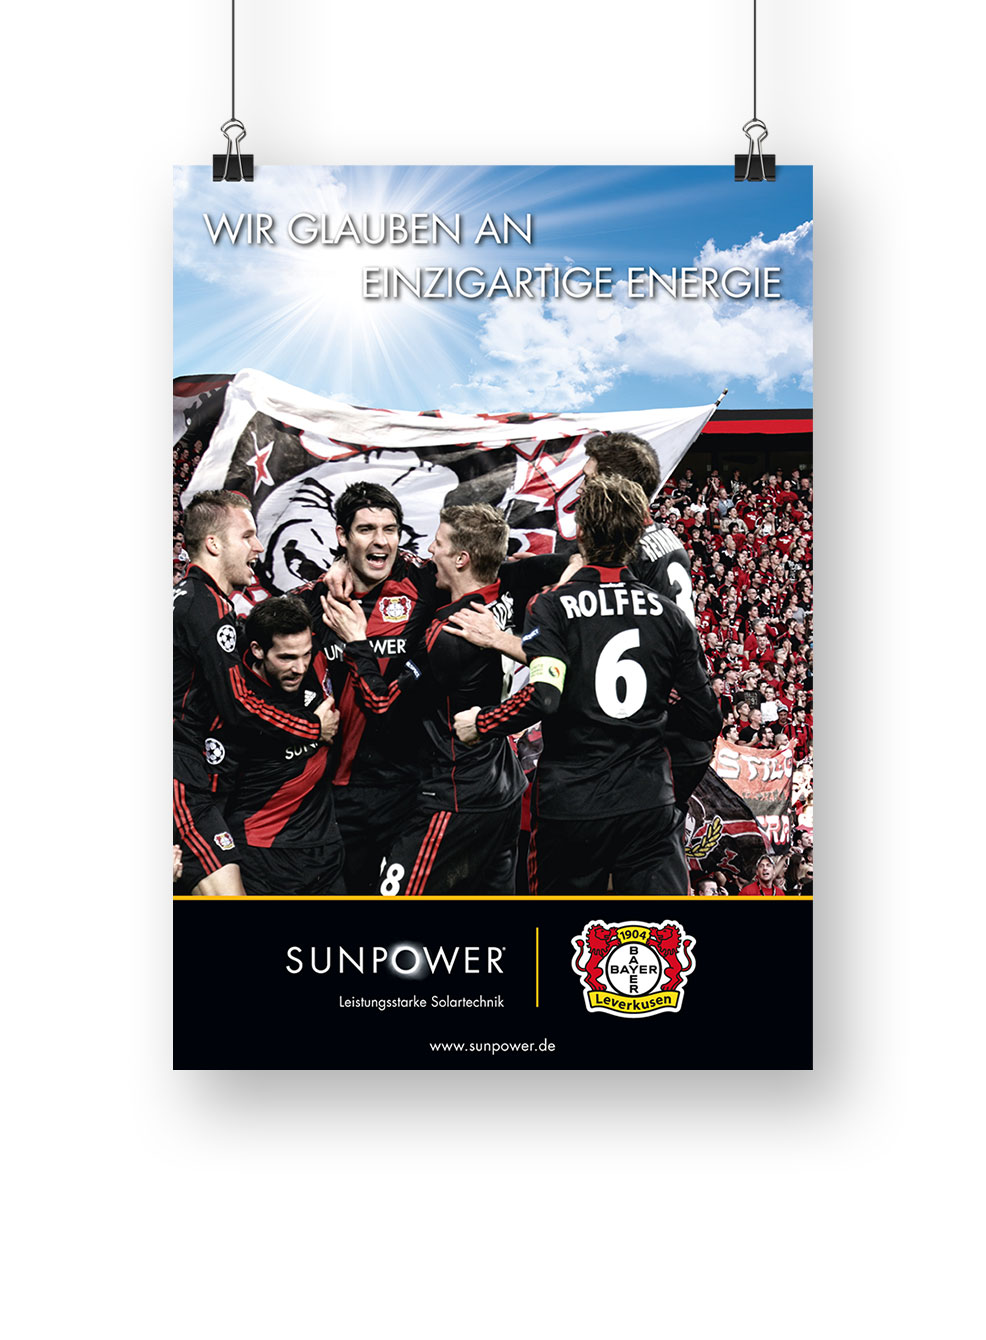 SunPower_Bayer_04_Leverkusen_mobile-5